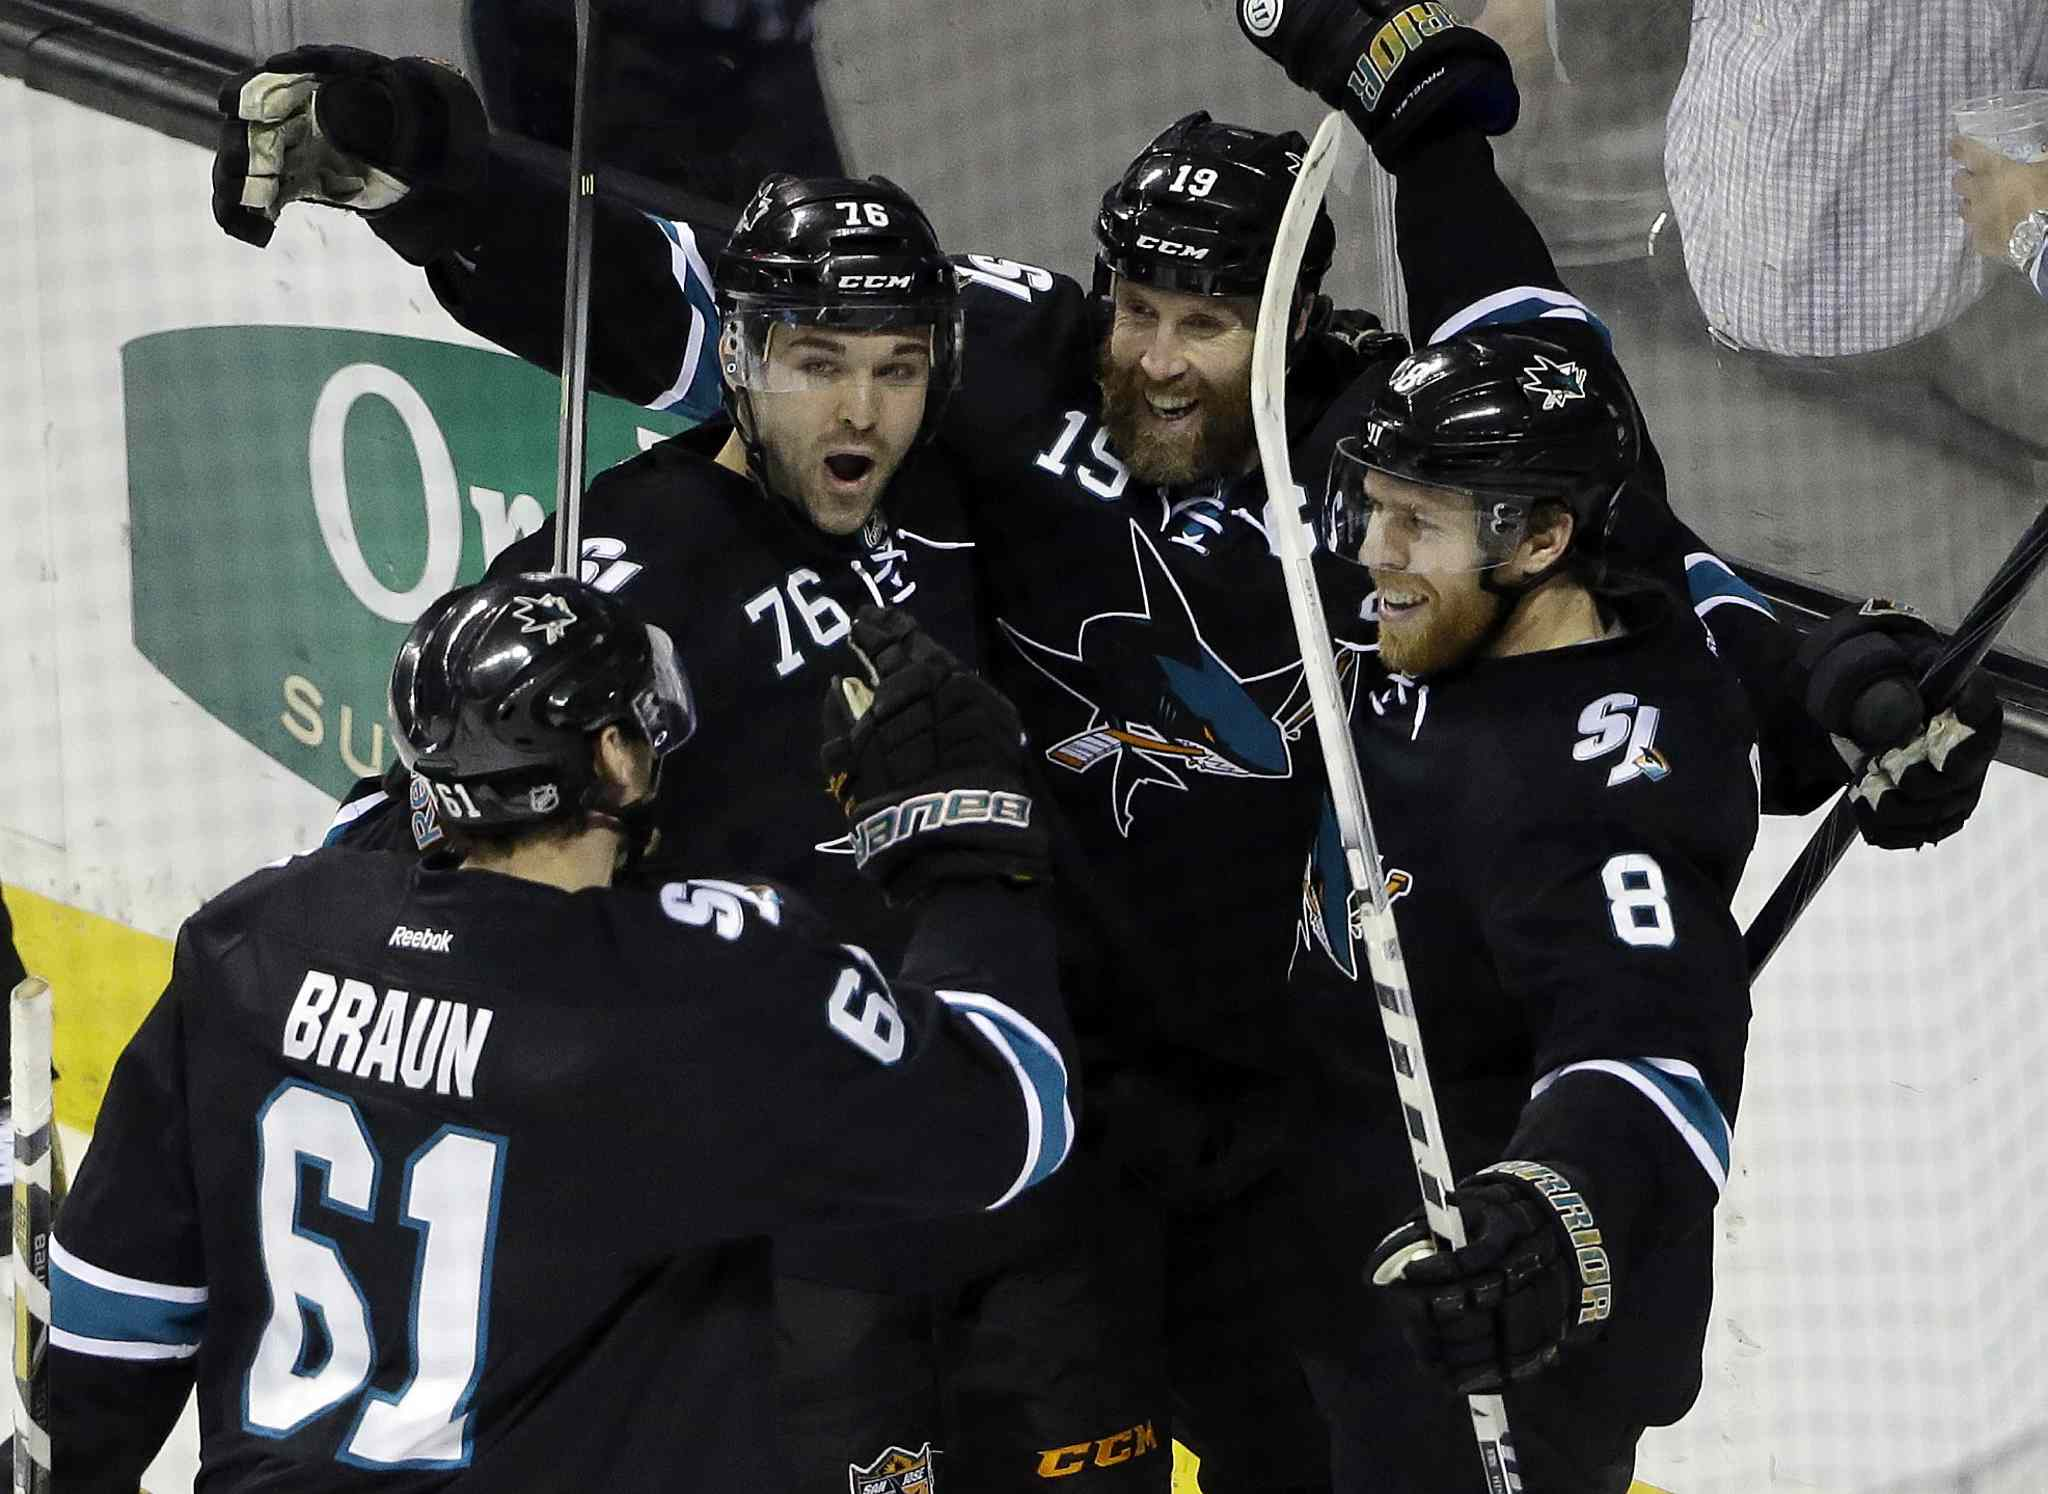 San Jose Sharks' Joe Pavelski (8) celebrates his goal with teammates during the third period of an NHL hockey game against the Winnipeg Jets on Thursday. San Jose won 1-0.